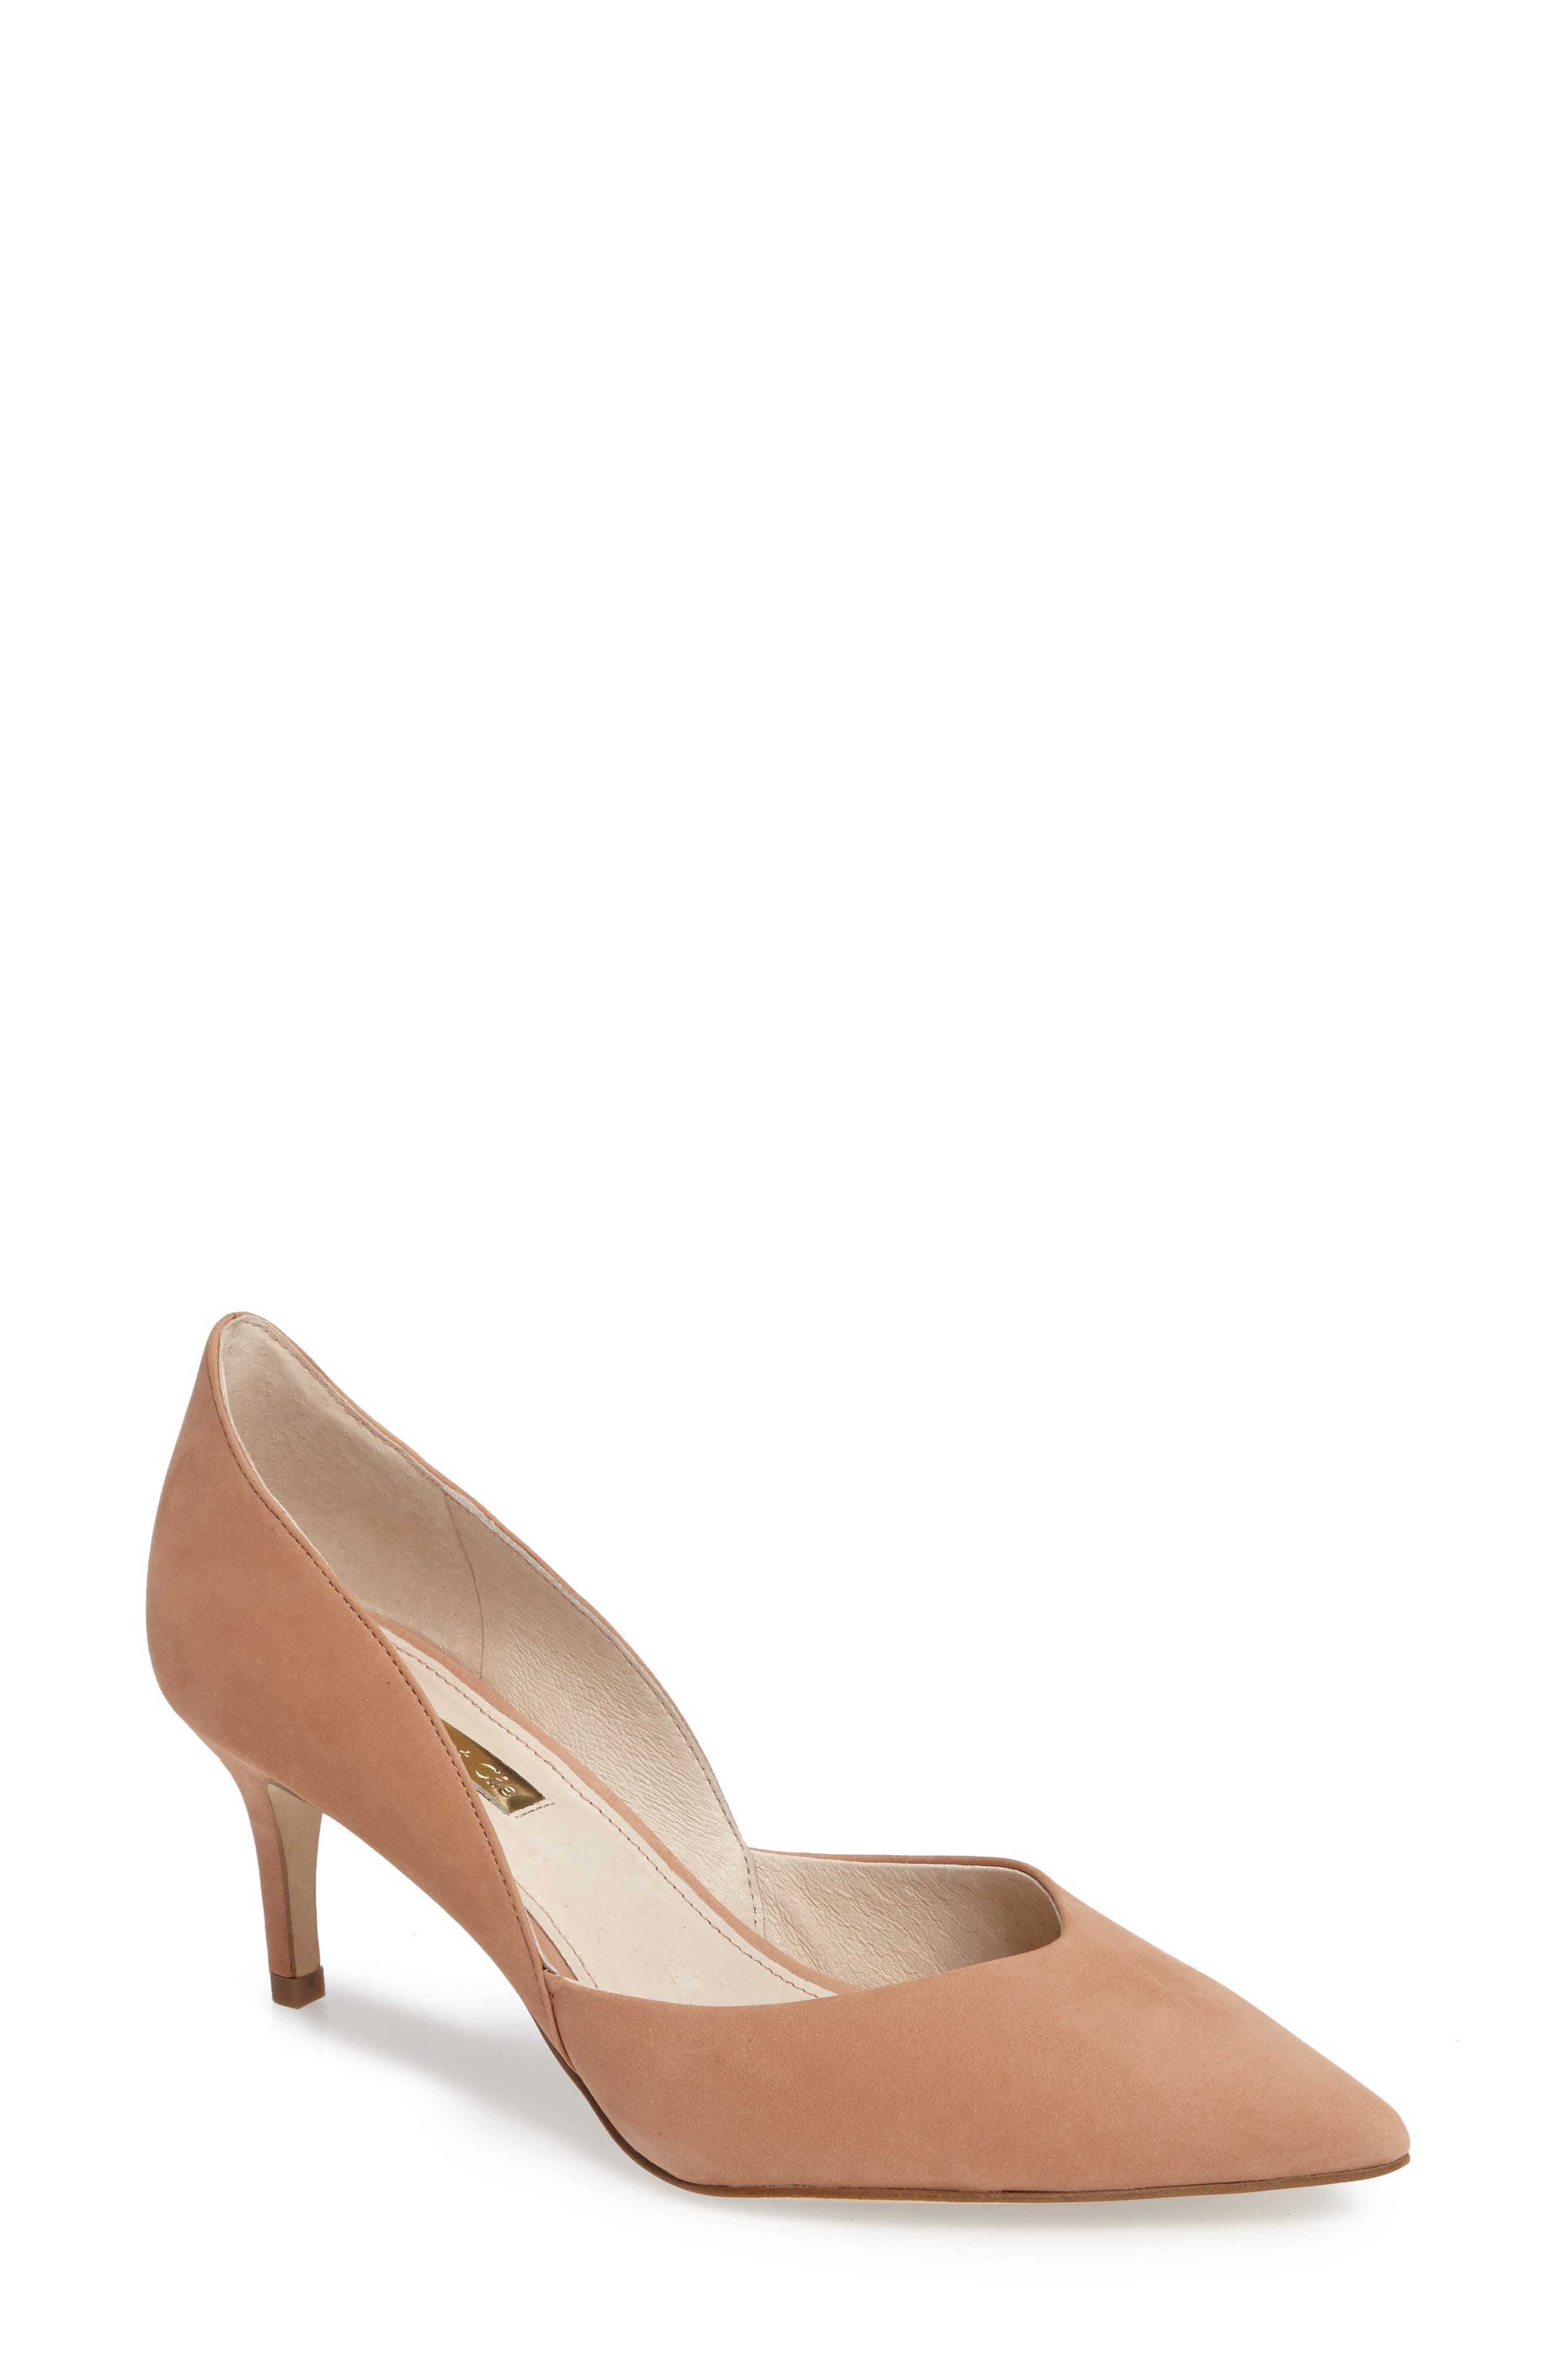 Louise et Cie Jacee Pointy Toe Pump (Women)